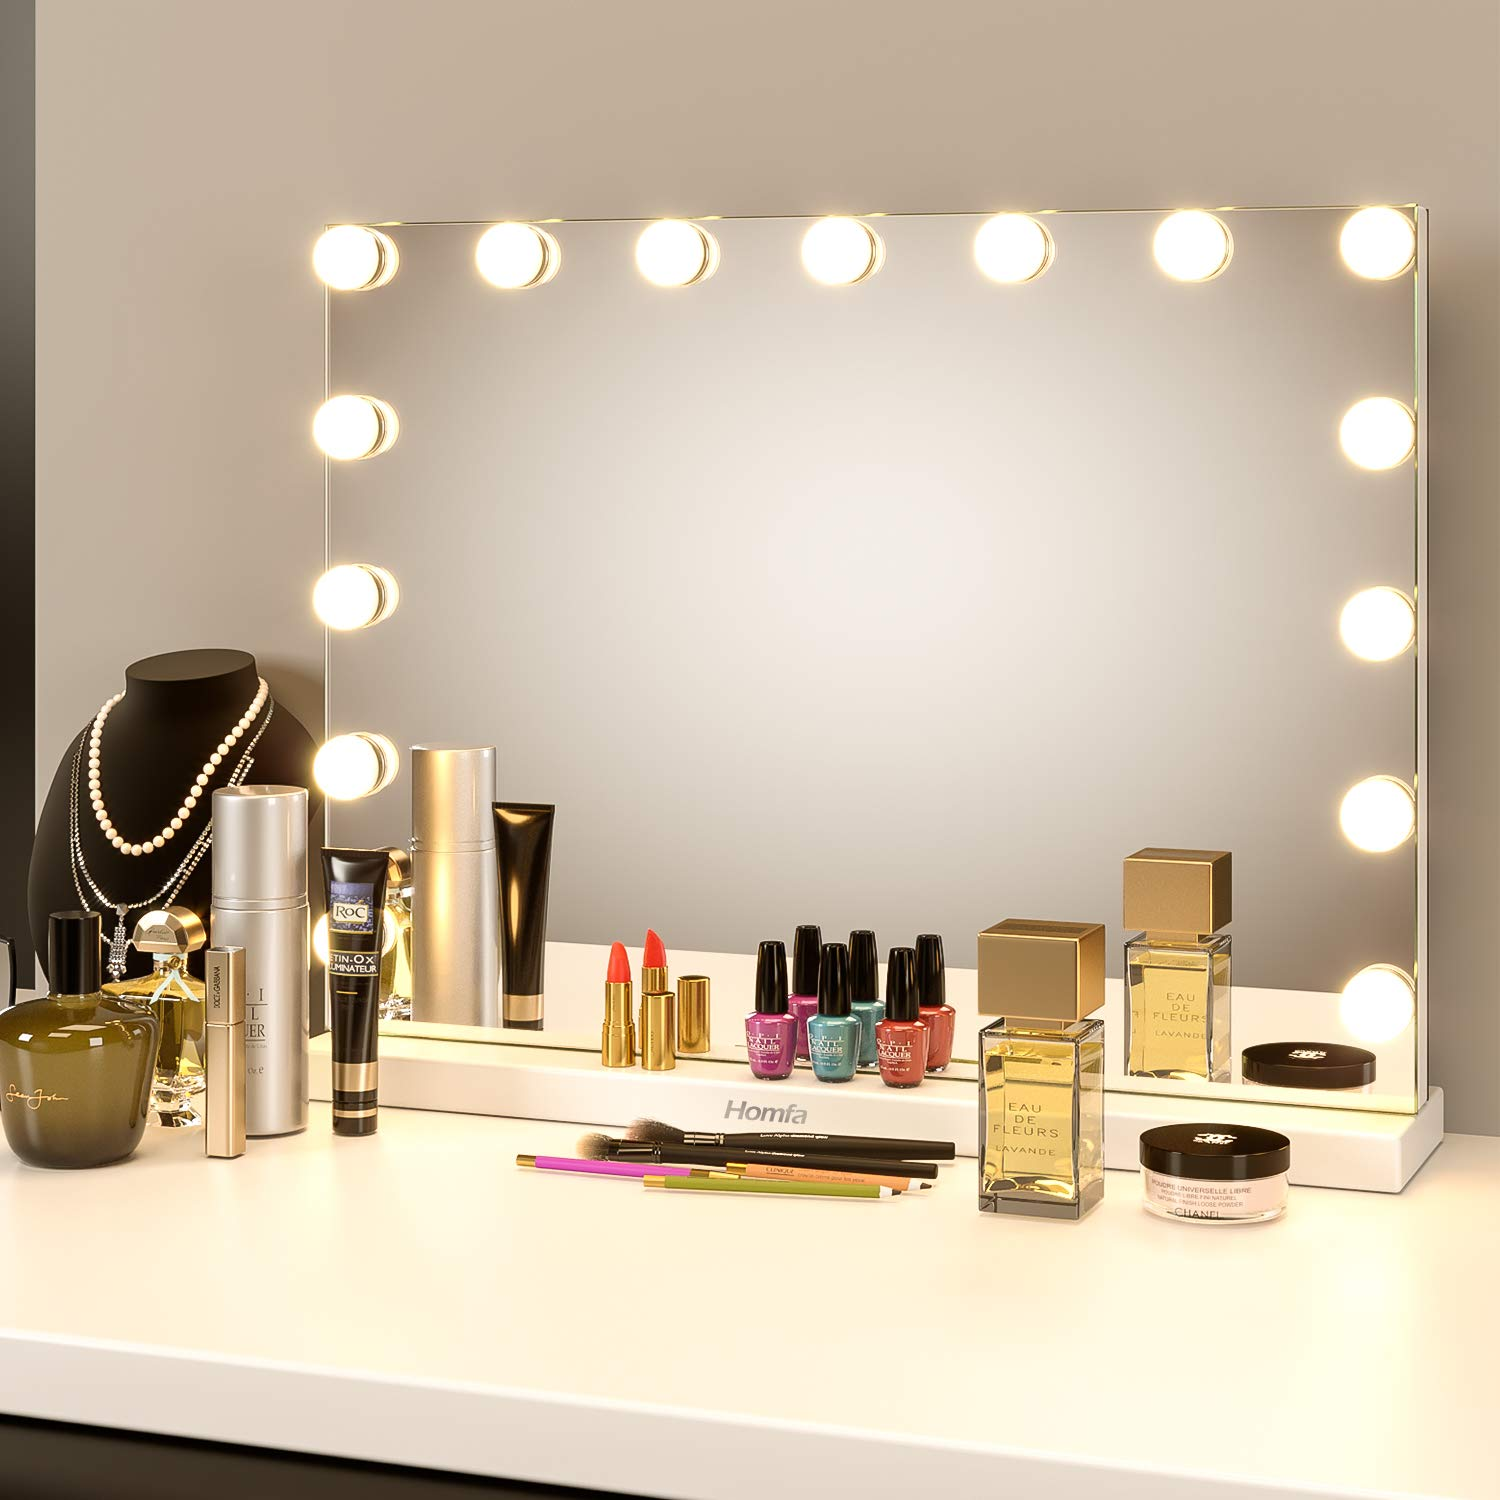 Homfa Hollywood Lighted Tabletop Cosmetic